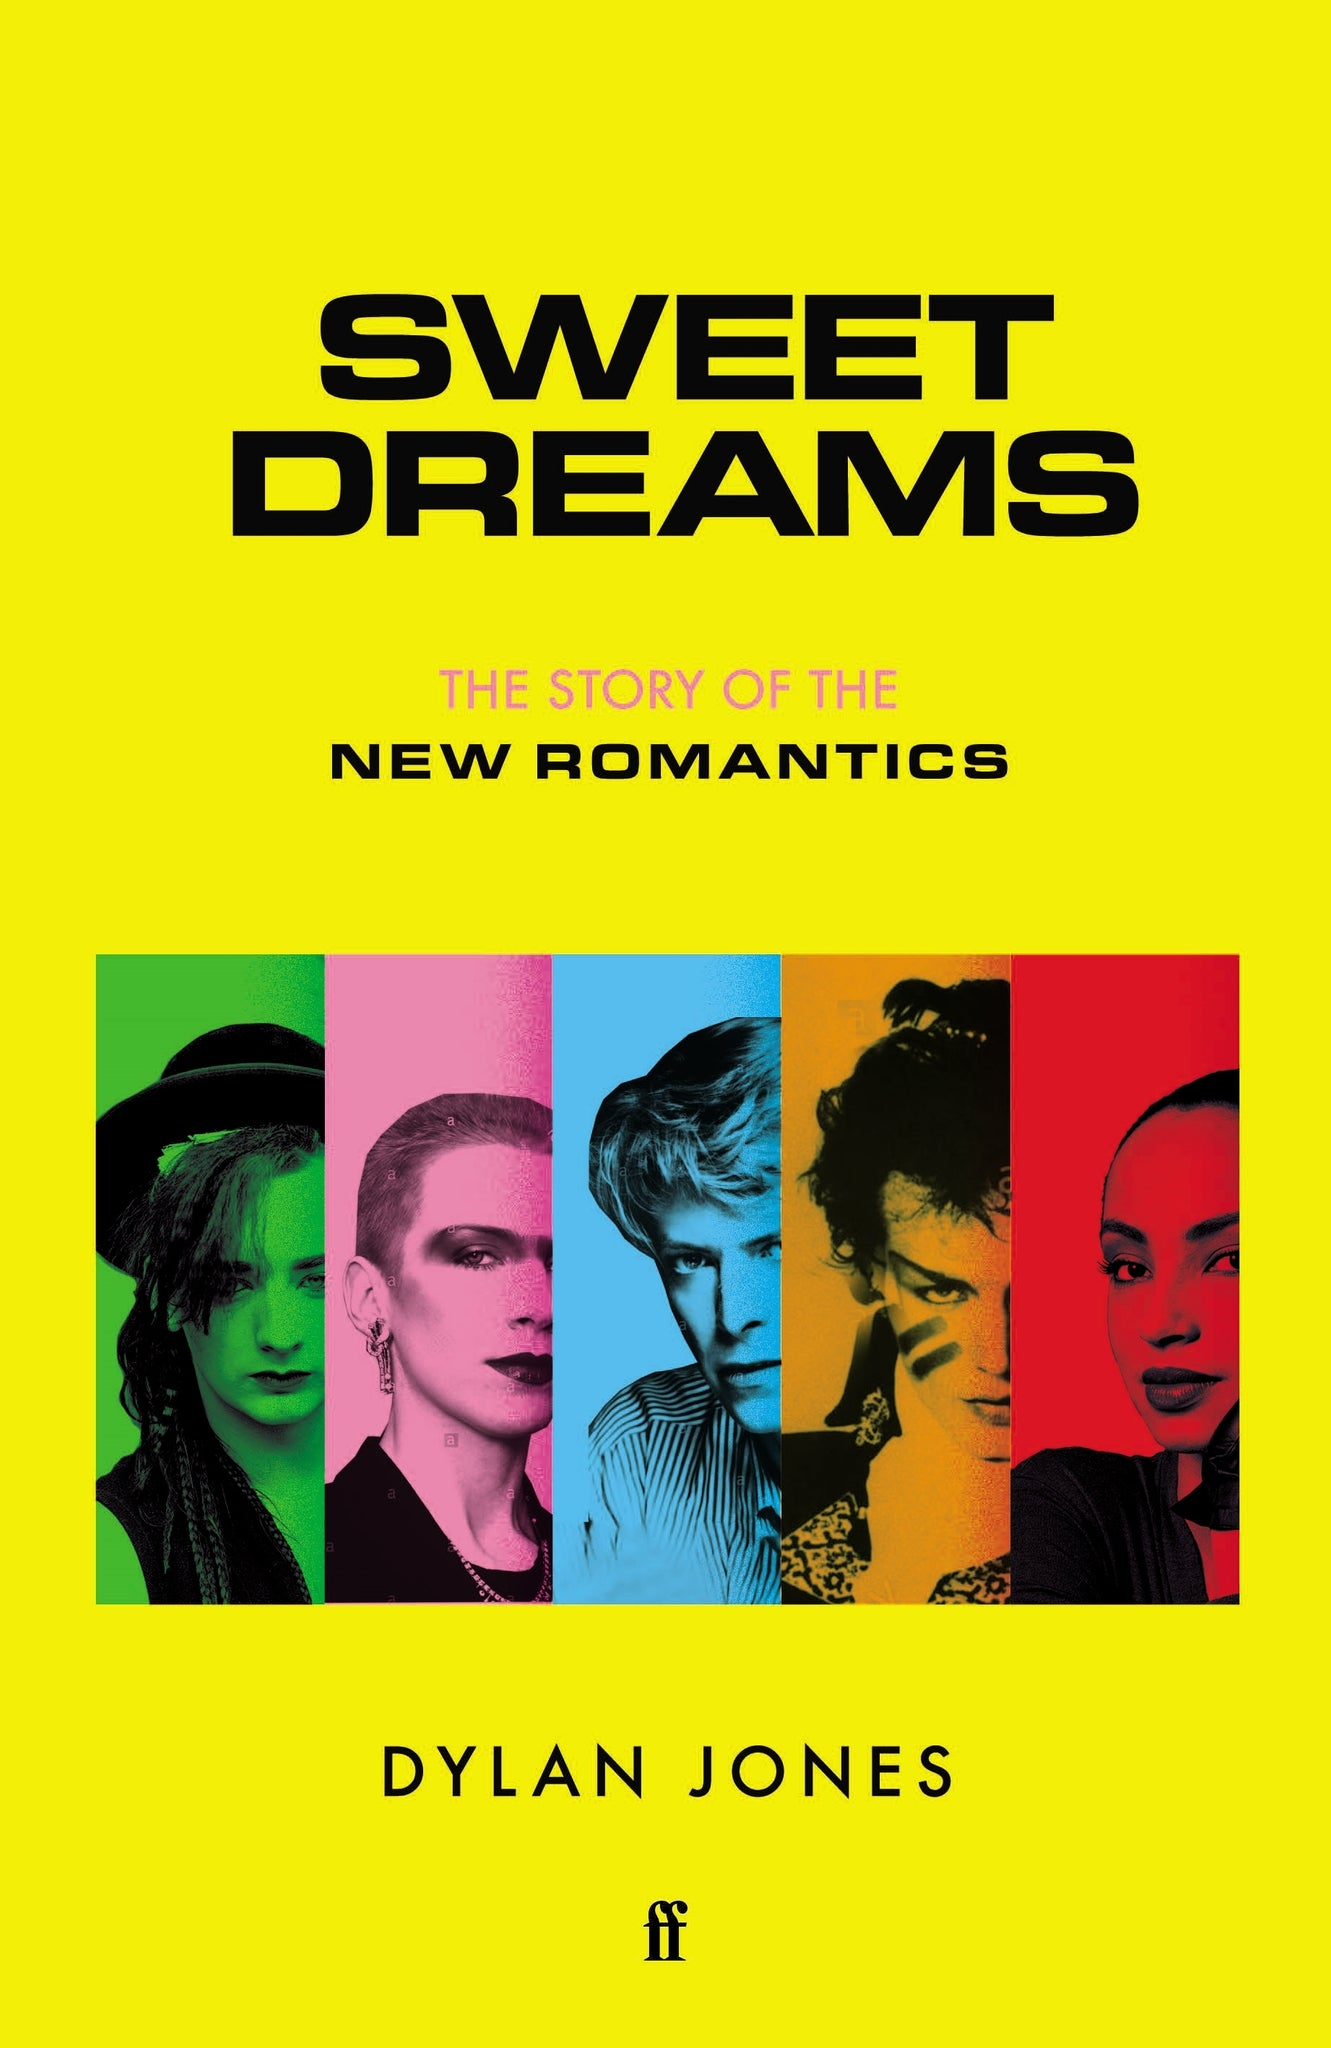 'Sweet Dreams' explores the New Romantic scene that launched Duran Duran, Culture Club and more